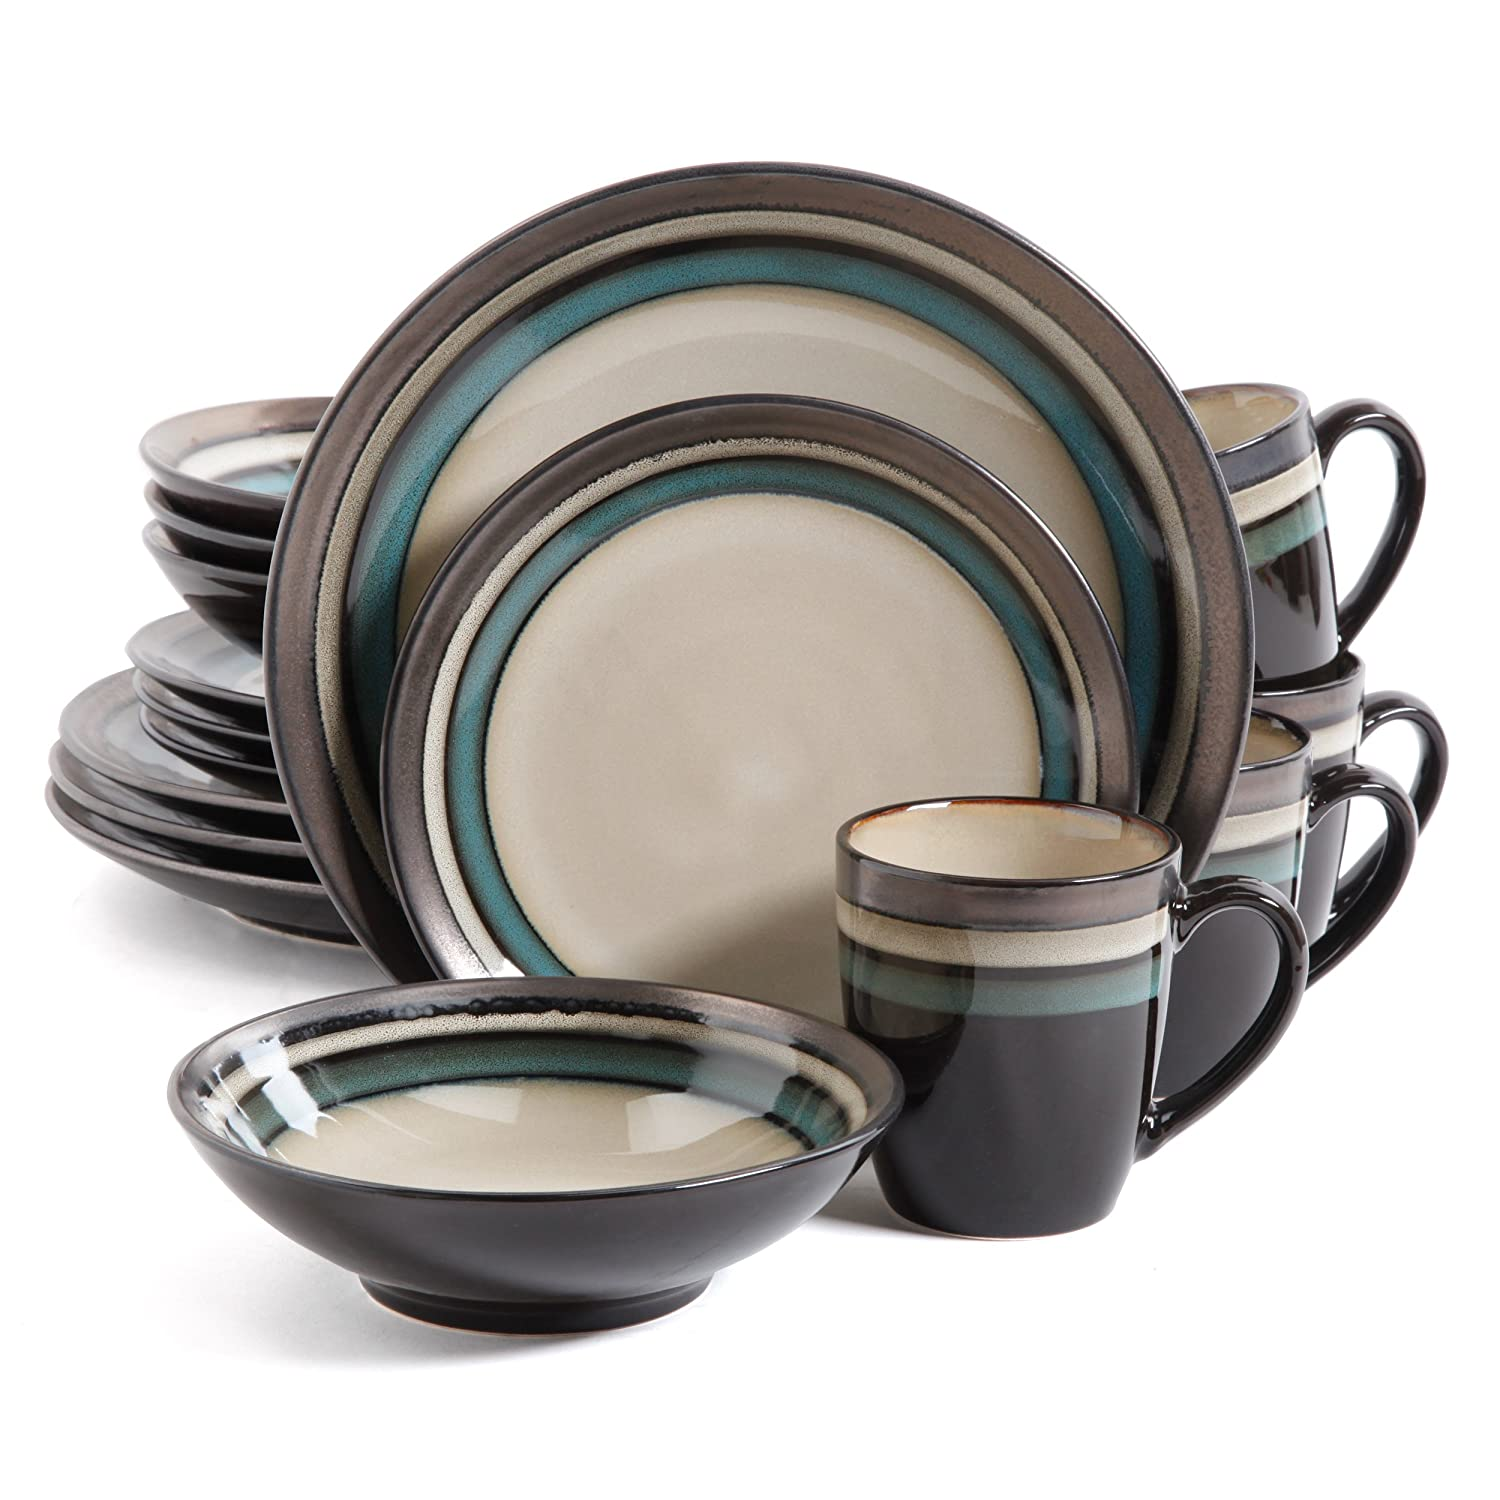 Amazon.com Gibson Lewisville 16 Piece Dinnerware Cream with Teal Reactive Metallic Rim Cream/Teal Kitchen \u0026 Dining  sc 1 st  Amazon.com : best casual dinnerware sets - pezcame.com